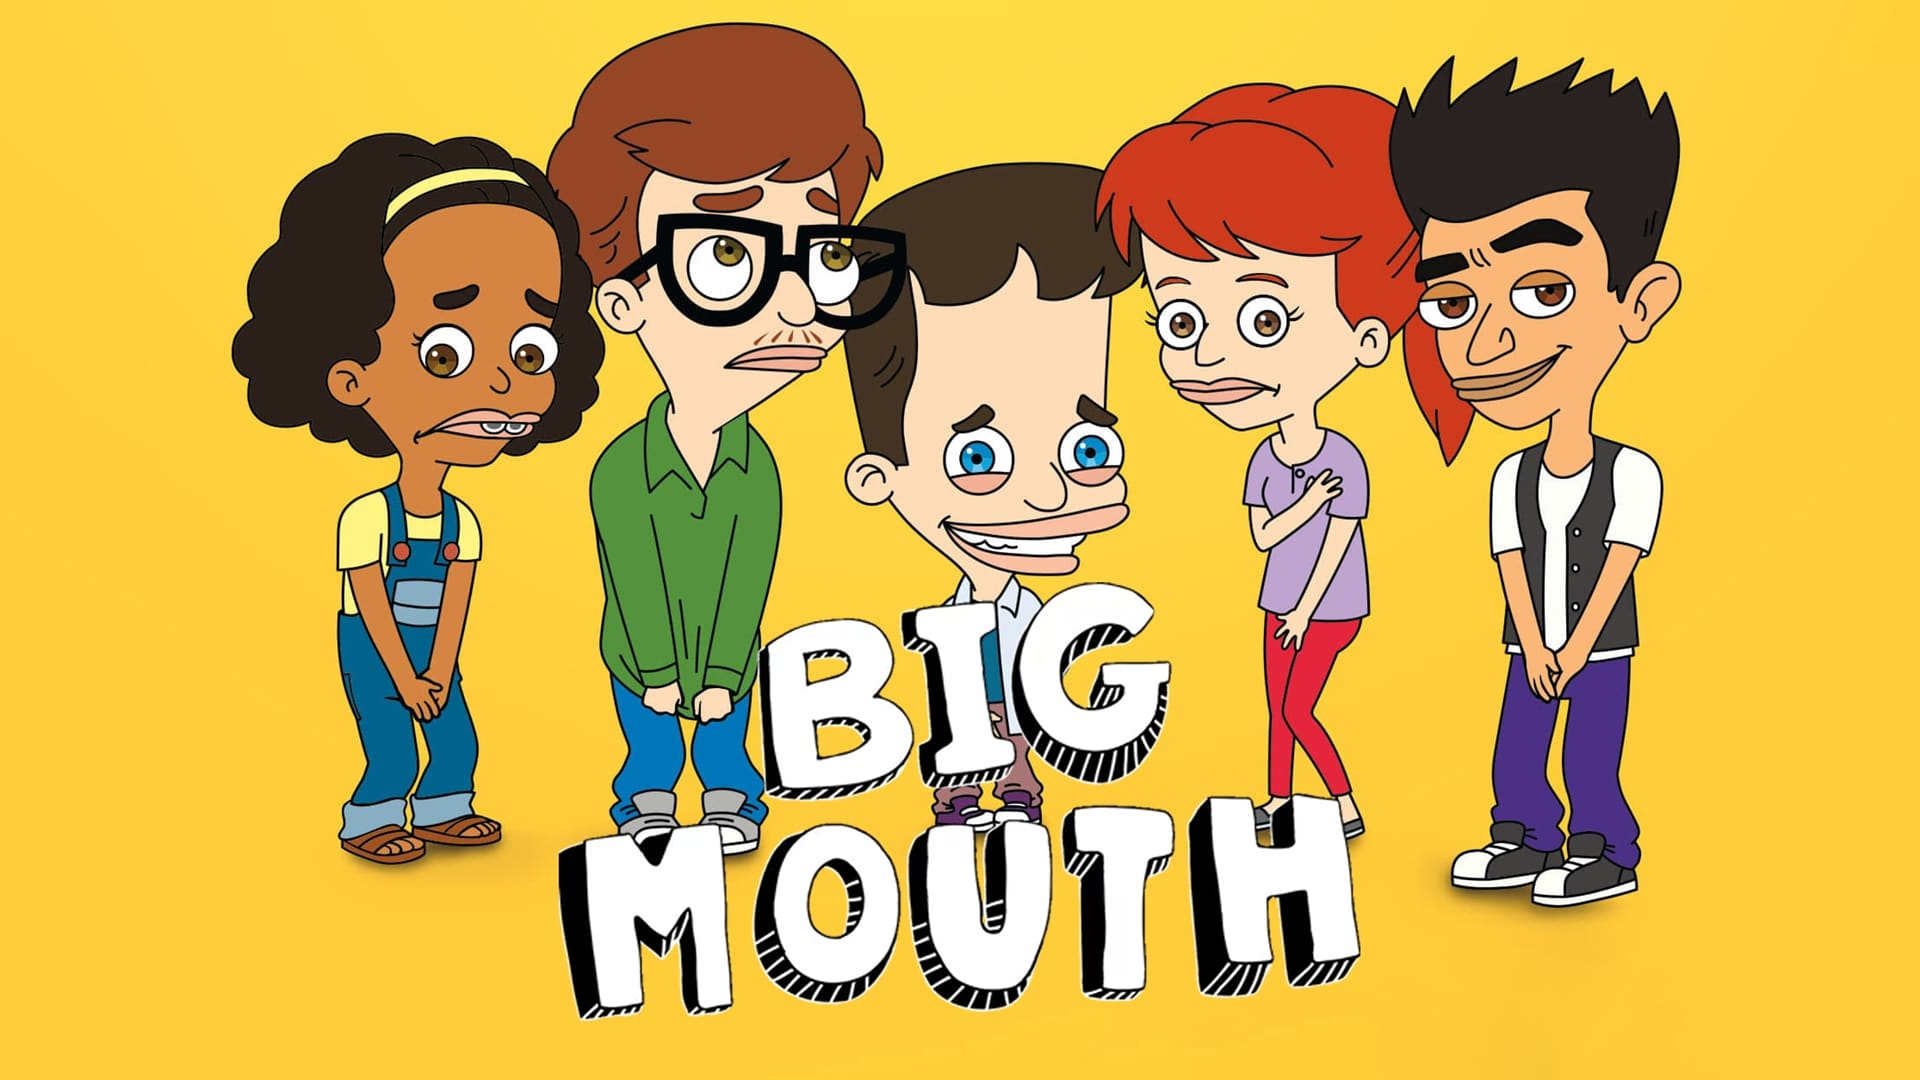 Fourth season of Big Mouth will soon release on Netflix